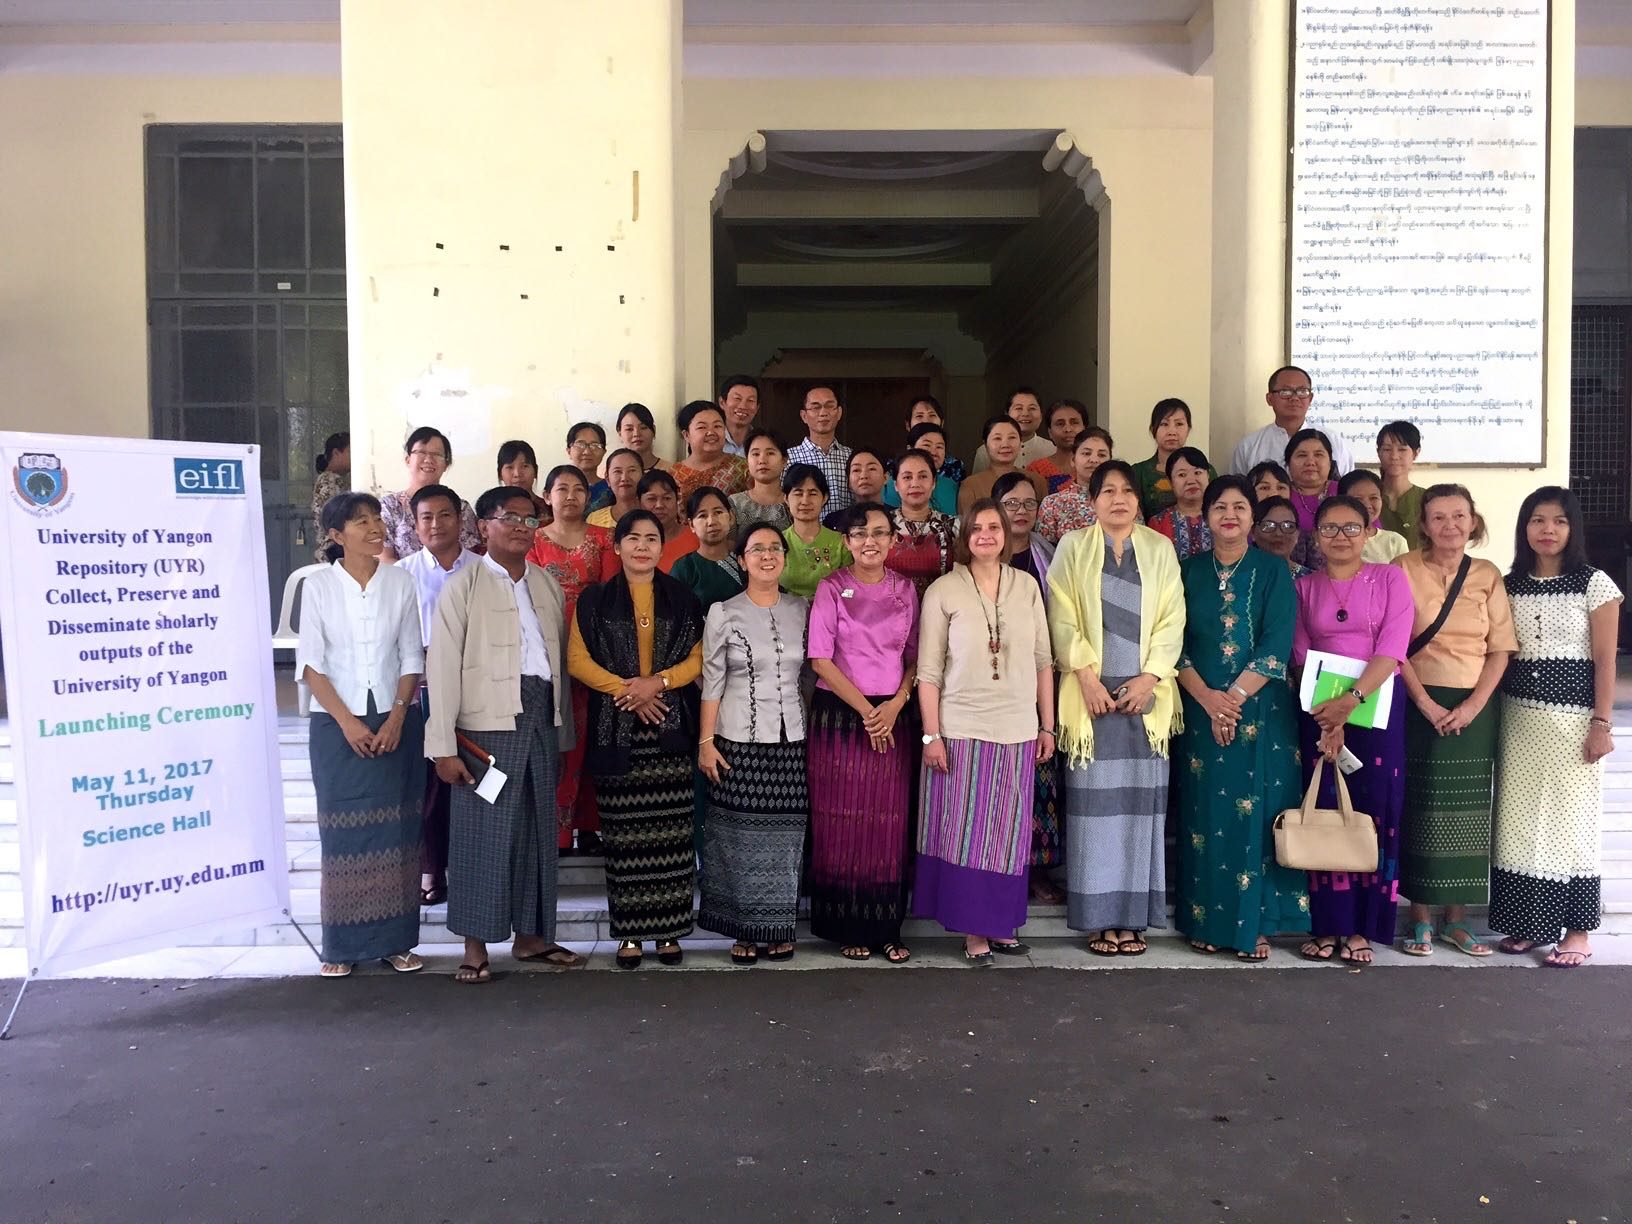 Participants at the launch of University of Yangon's open access repository.